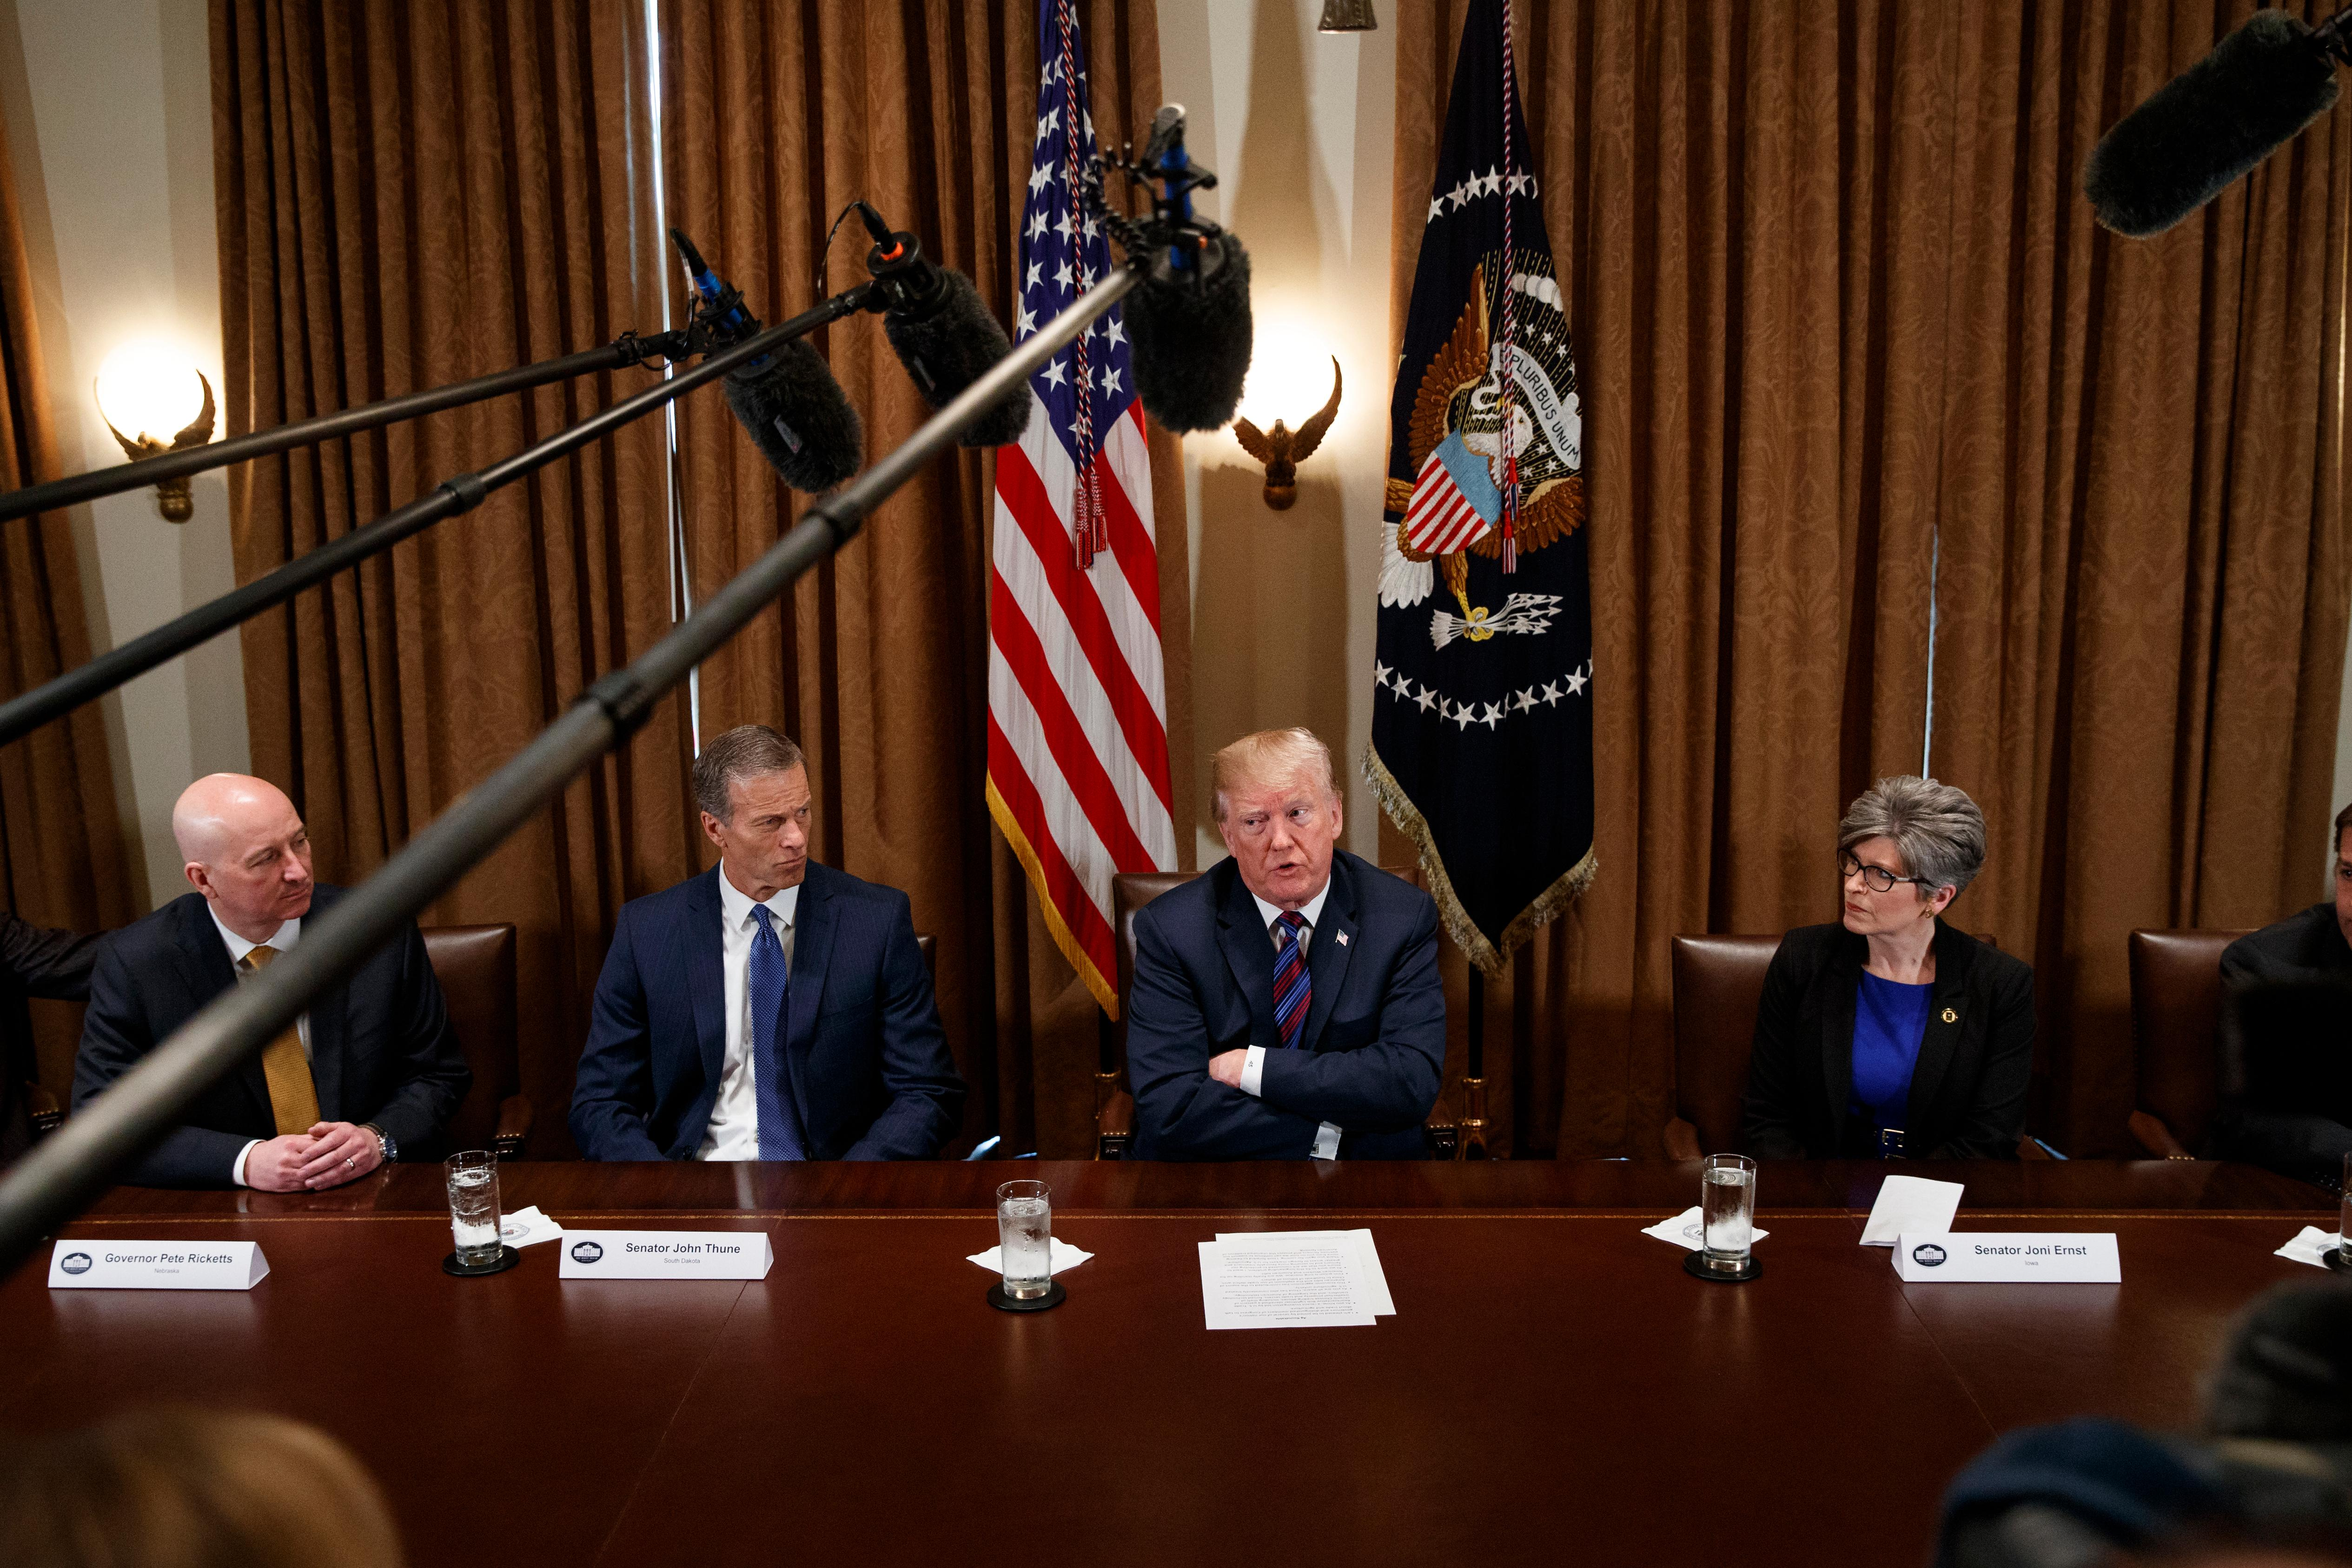 President Donald Trump speaks during a meeting with governors and lawmakers in the Cabinet Room of the White House, Thursday, April 12, 2018, in Washington. From left, Gov. Pete Ricketts, R-Neb., Sen. John Thune, R-S.D., Trump, and Sen. Joni Ernst, R-Iowa. (AP Photo/Evan Vucci)